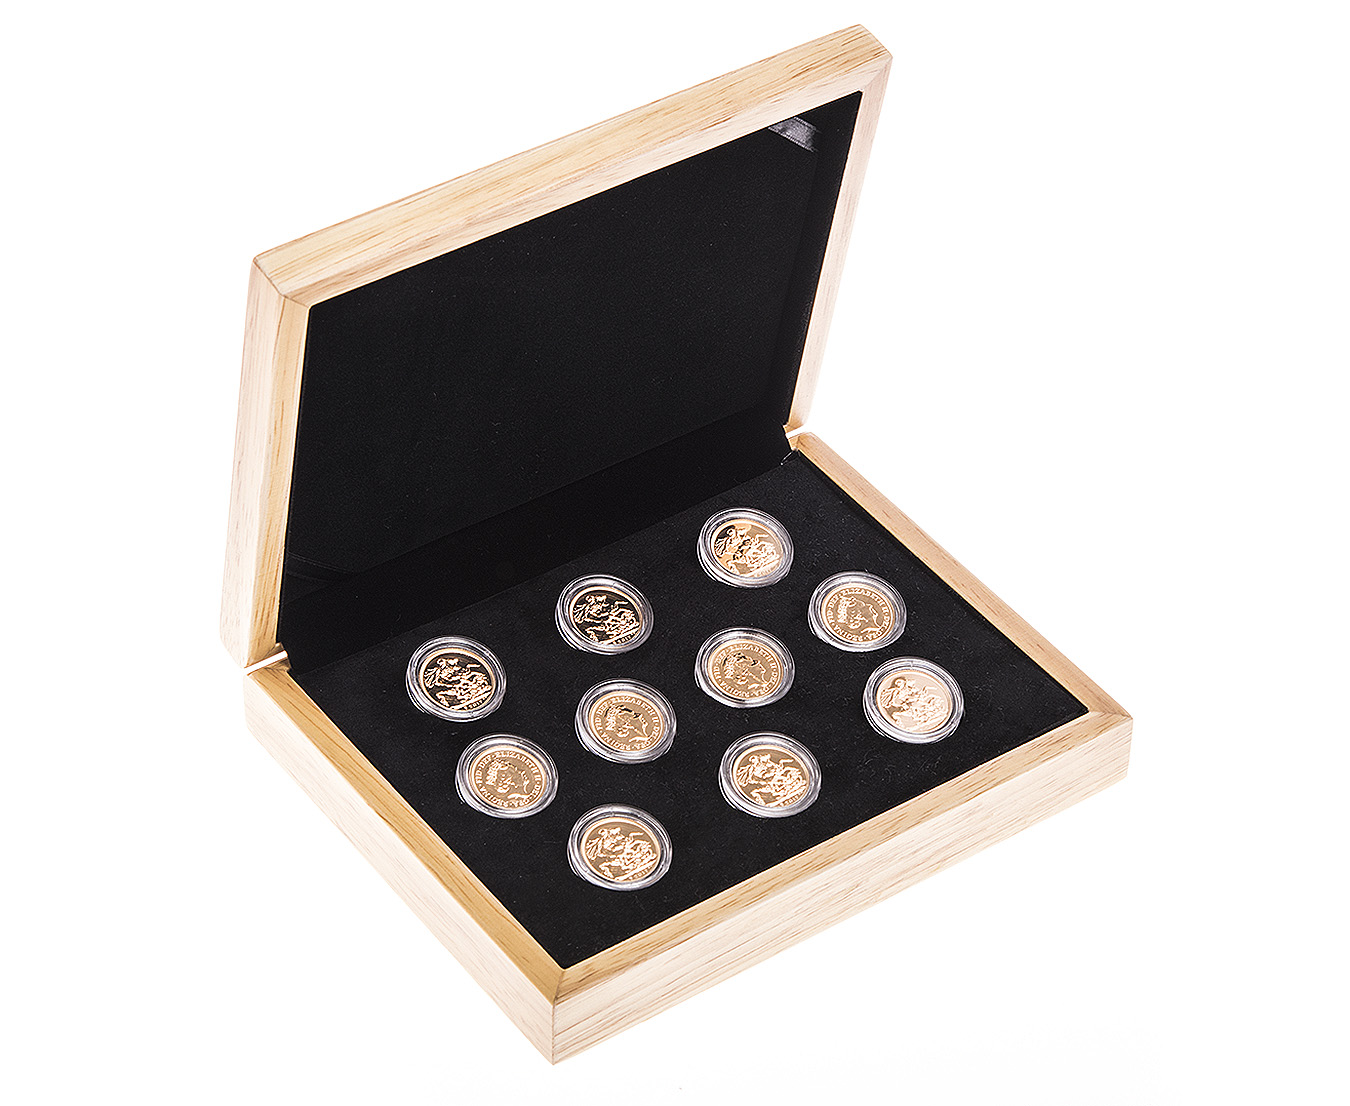 Ten 2018 Sovereign Gold Coin in Gift Box